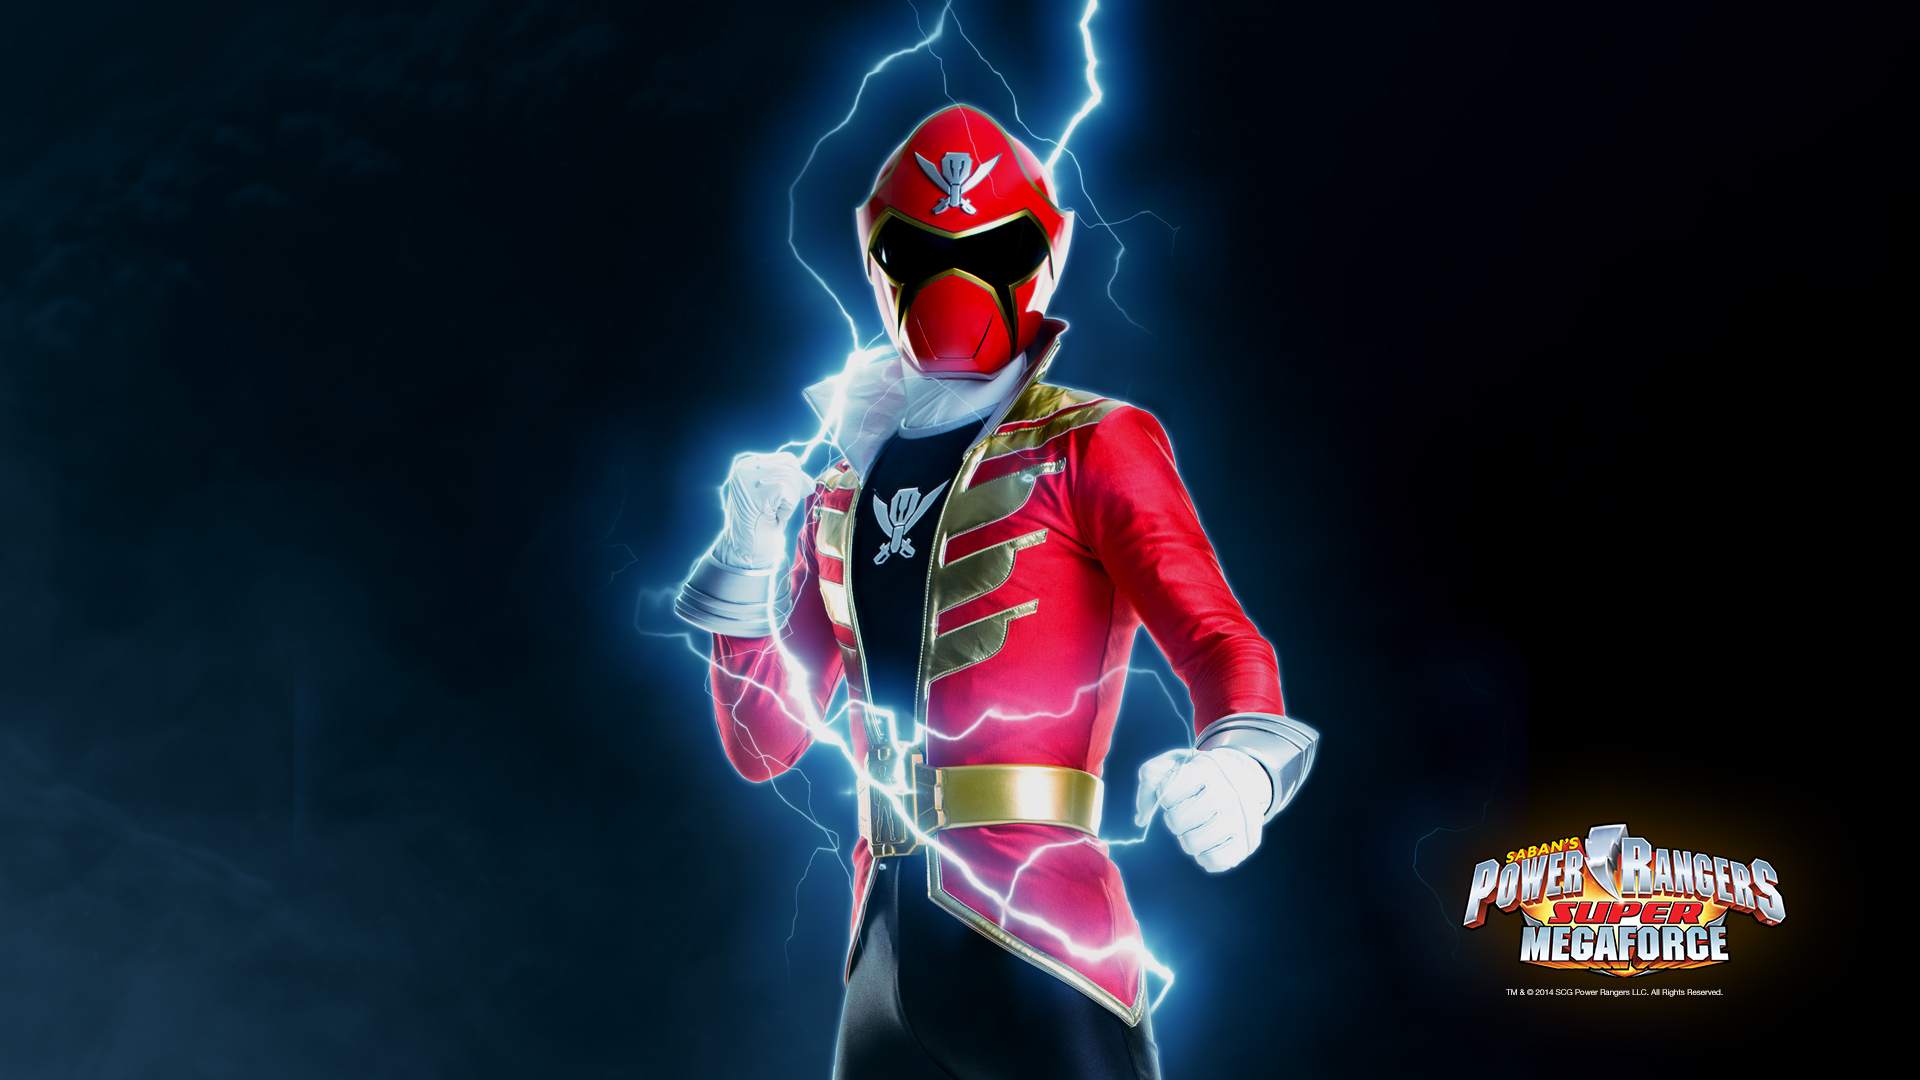 red ranger wallpaper - photo #14